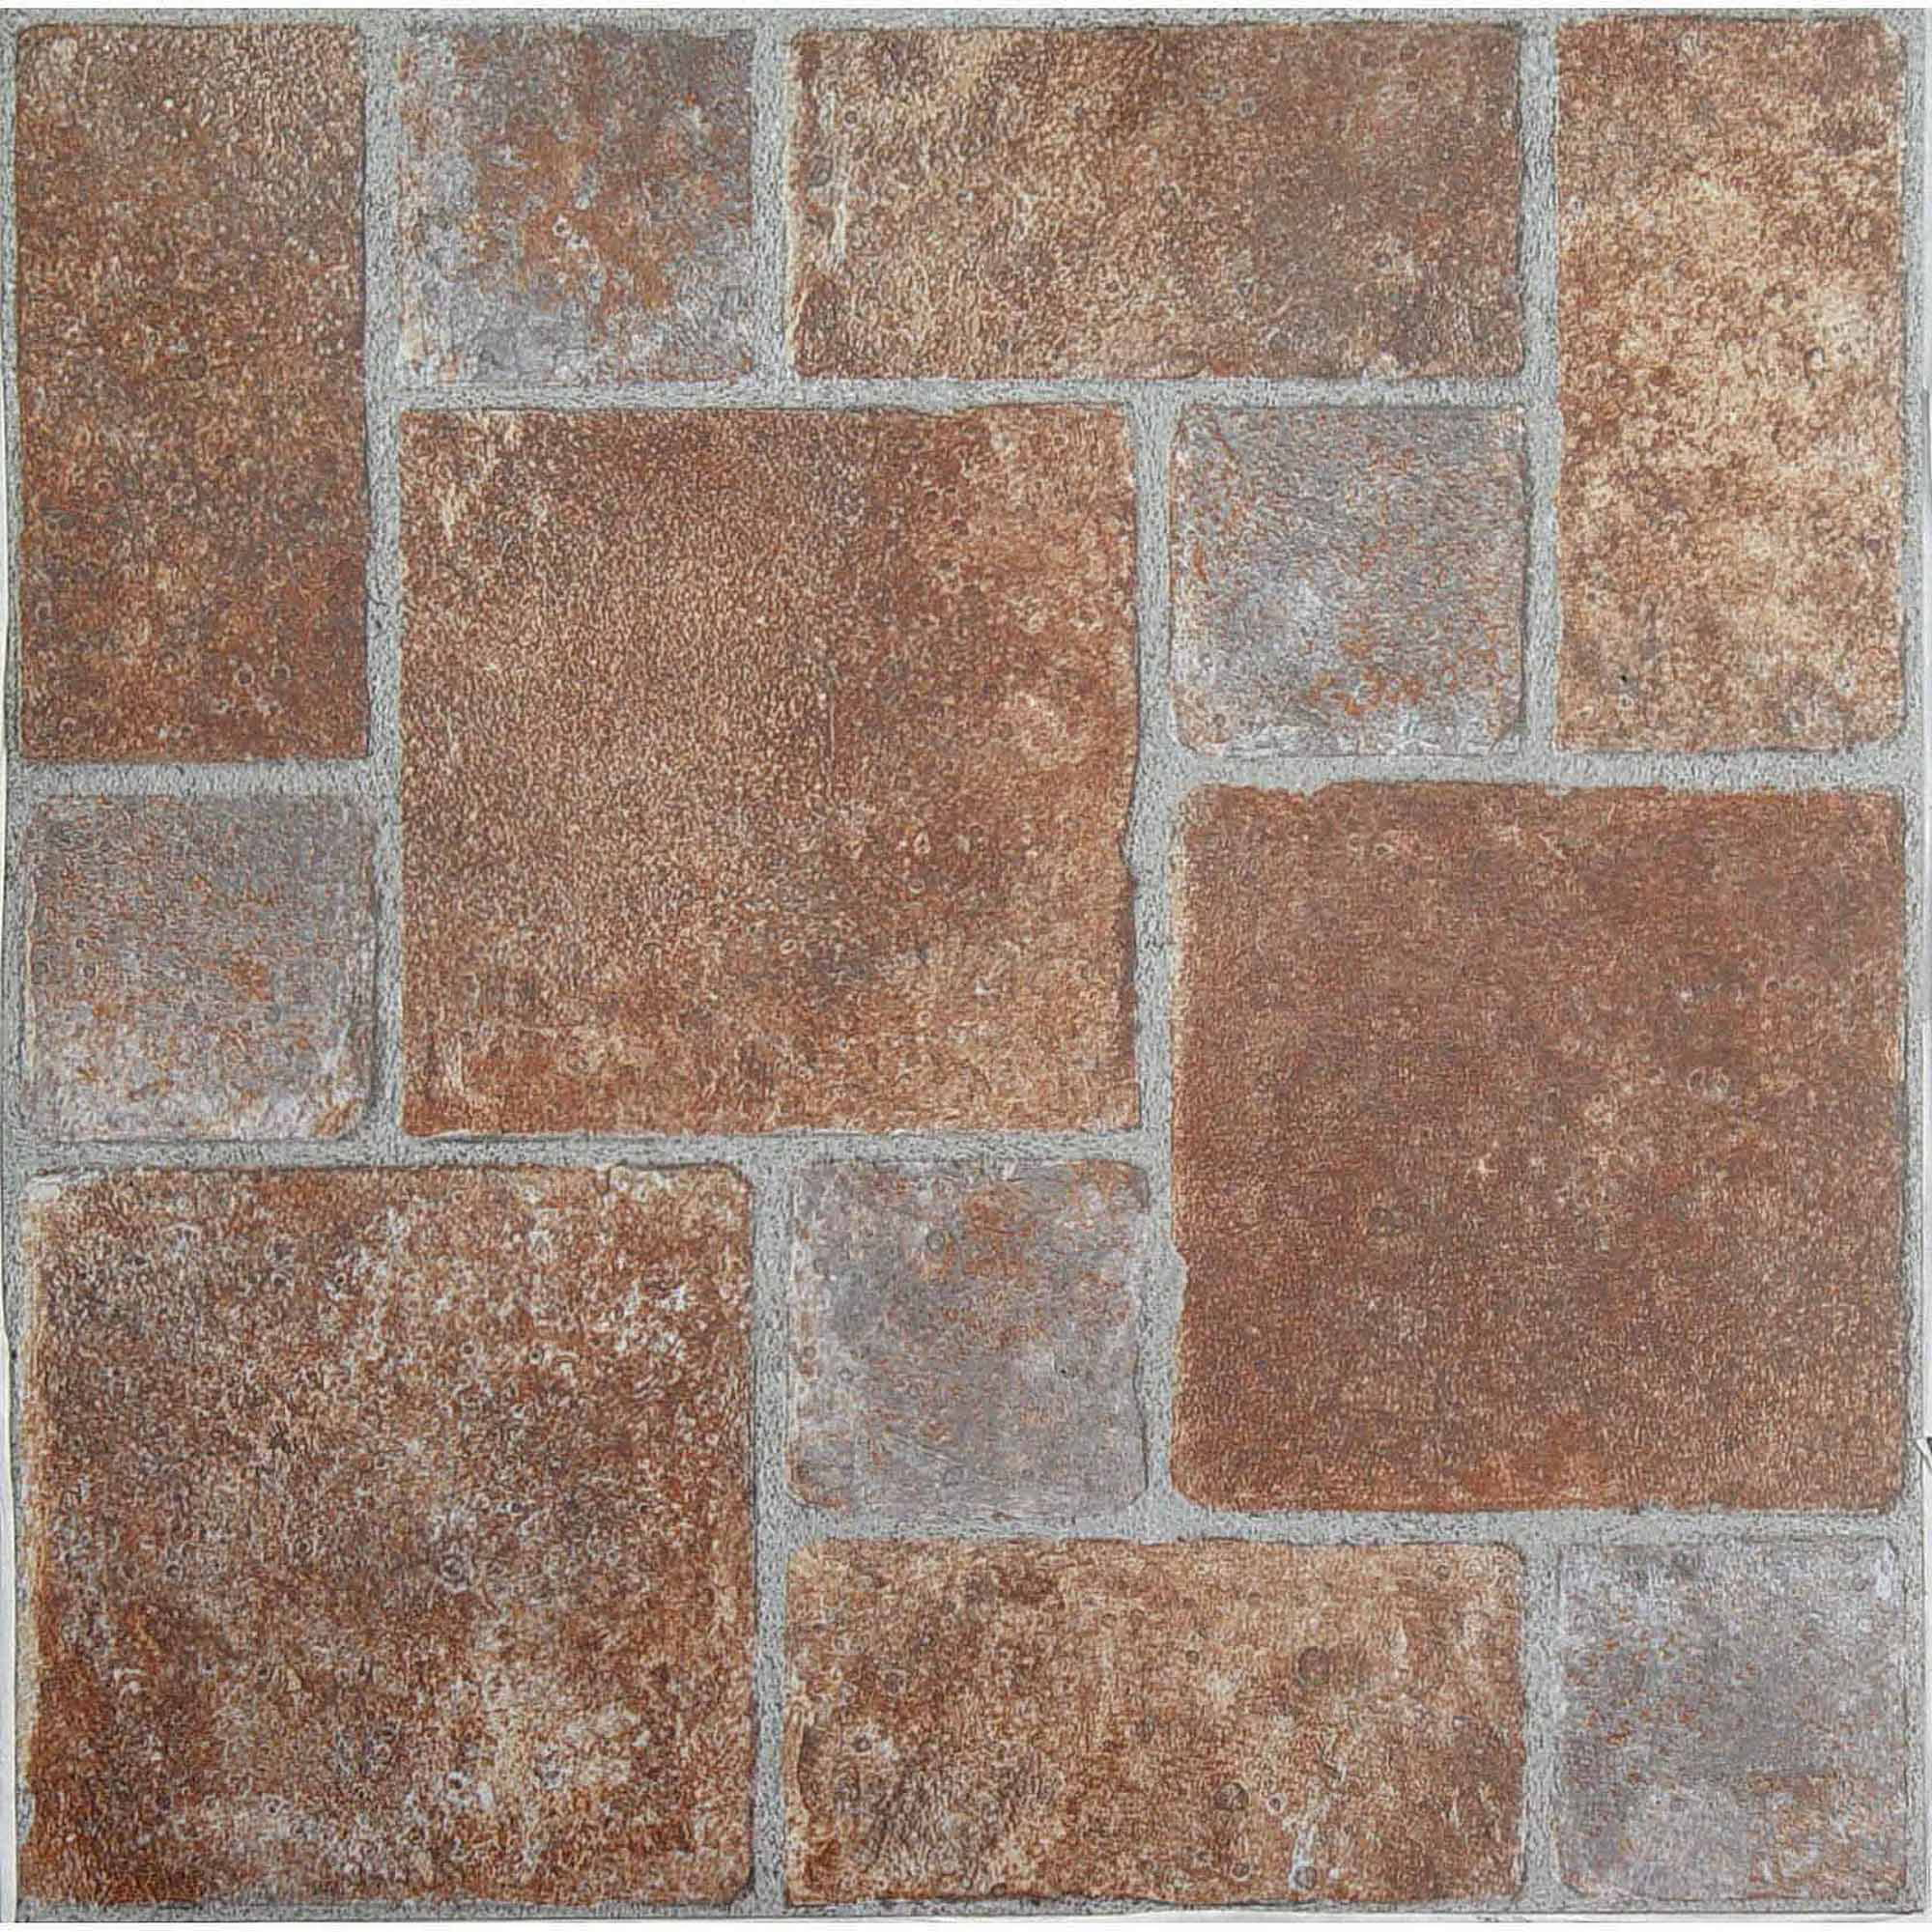 Nexus brick pavers 12x12 self adhesive vinyl floor tile 20 tiles nexus brick pavers 12x12 self adhesive vinyl floor tile 20 tiles20 sqft walmart dailygadgetfo Choice Image